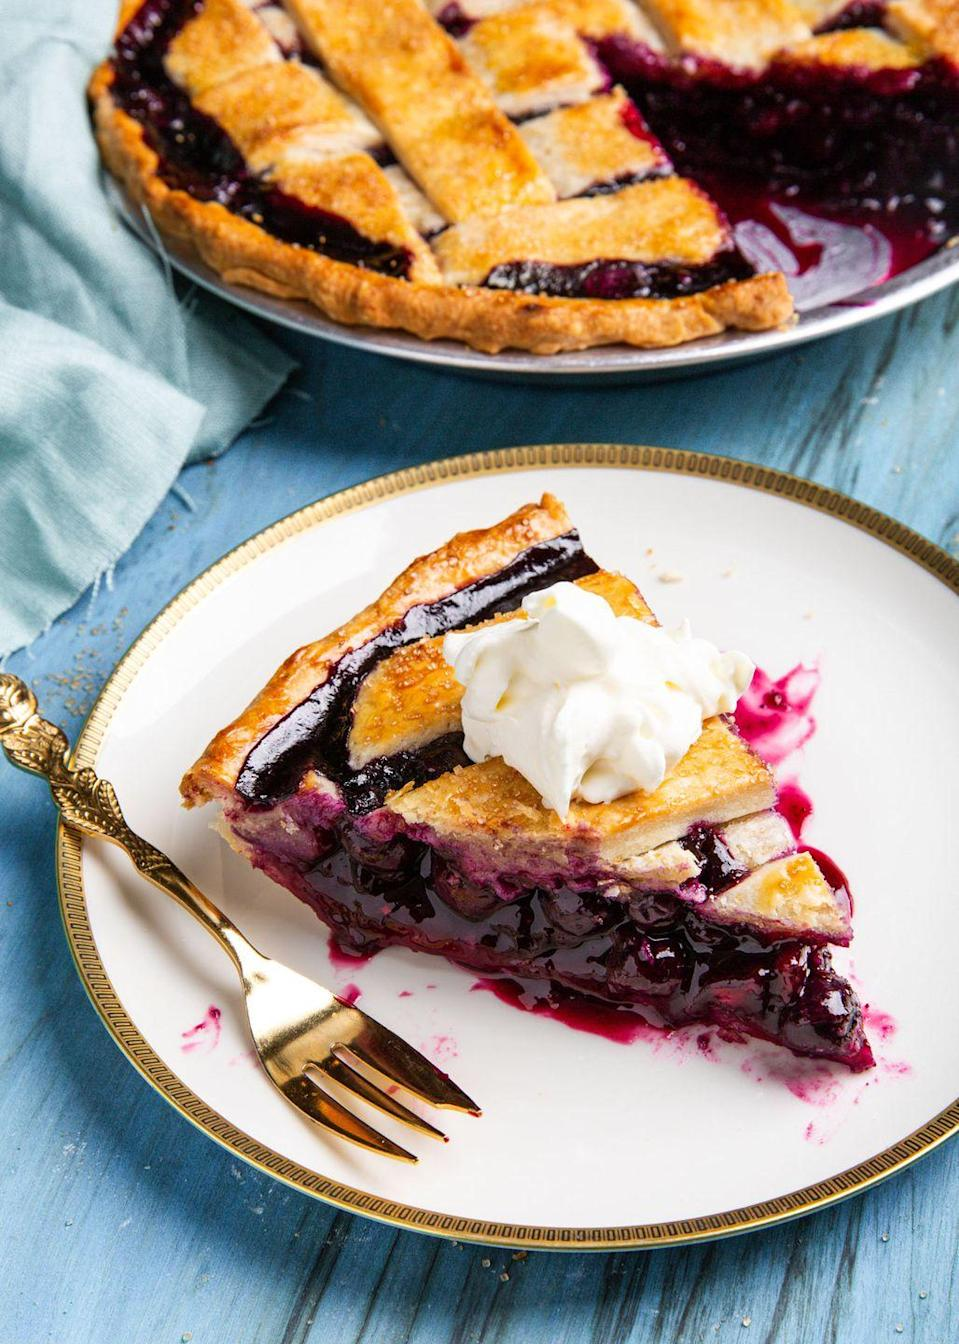 """<p>Fresh blueberry pie makes us want to sit on the back porch and enjoy the warm summer breeze.</p><p>Get the recipe from <a href=""""https://www.delish.com/cooking/recipe-ideas/a32501337/blueberry-pie-recipe/"""" rel=""""nofollow noopener"""" target=""""_blank"""" data-ylk=""""slk:Delish"""" class=""""link rapid-noclick-resp"""">Delish</a>.</p>"""